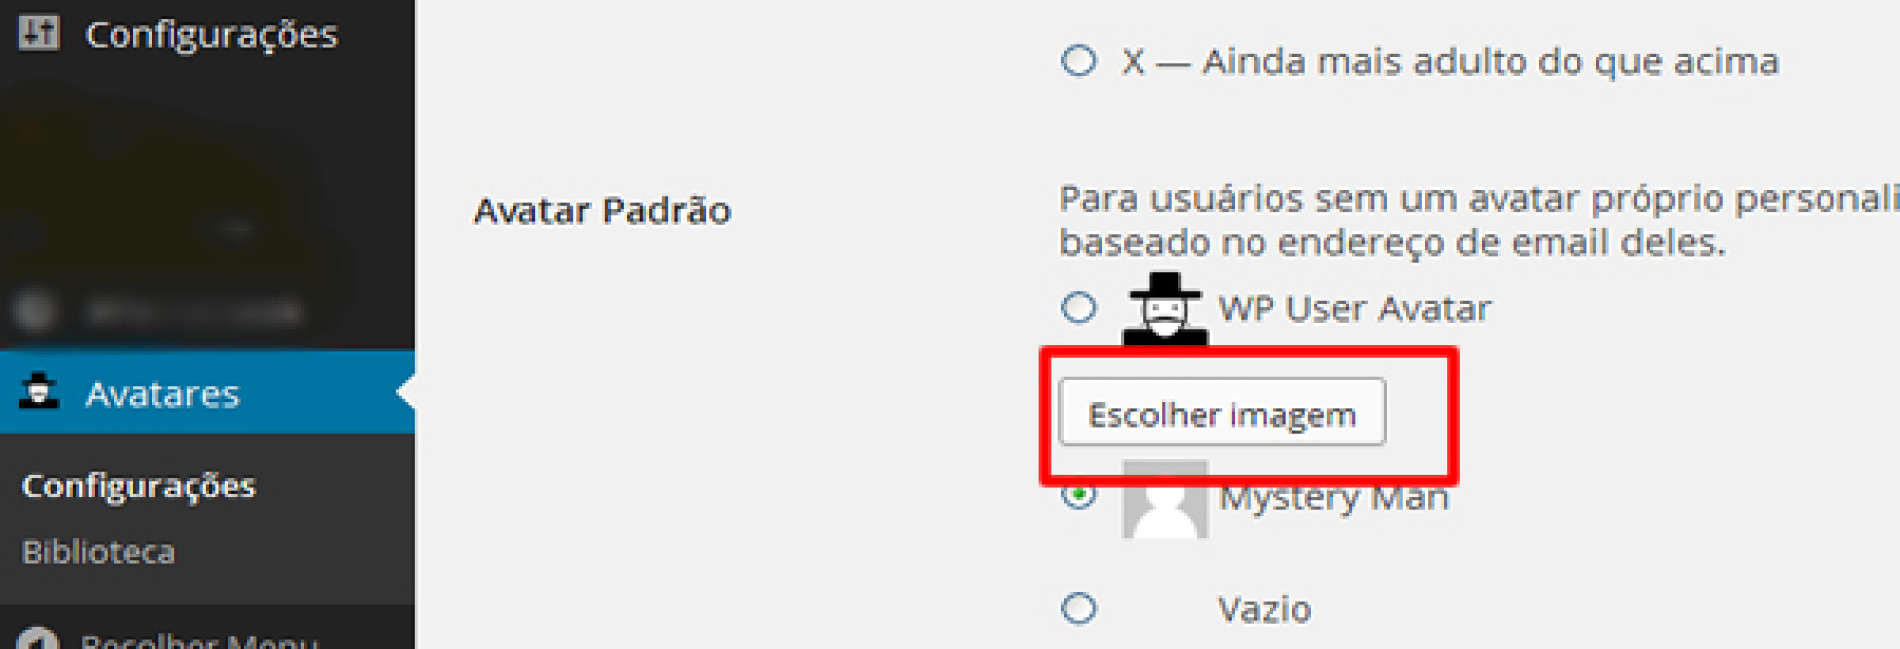 Como trocar a foto do perfil no WordPress?